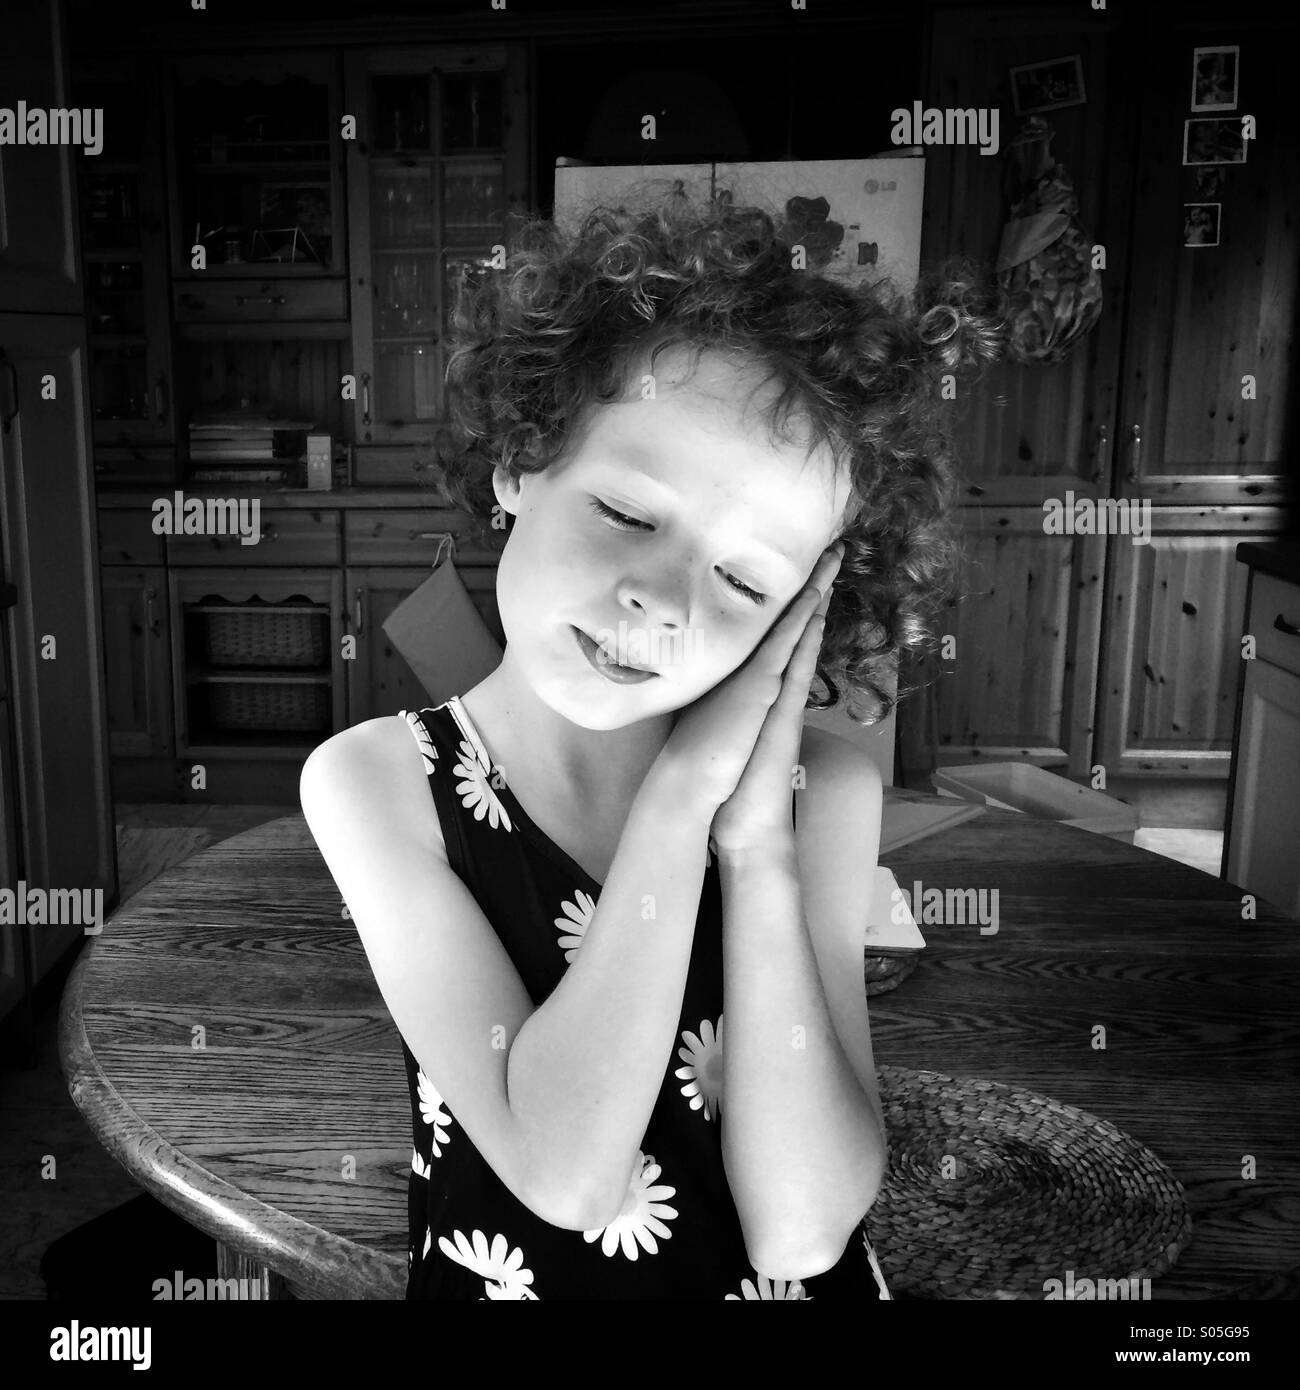 Girl in sleeping pose. - Stock Image